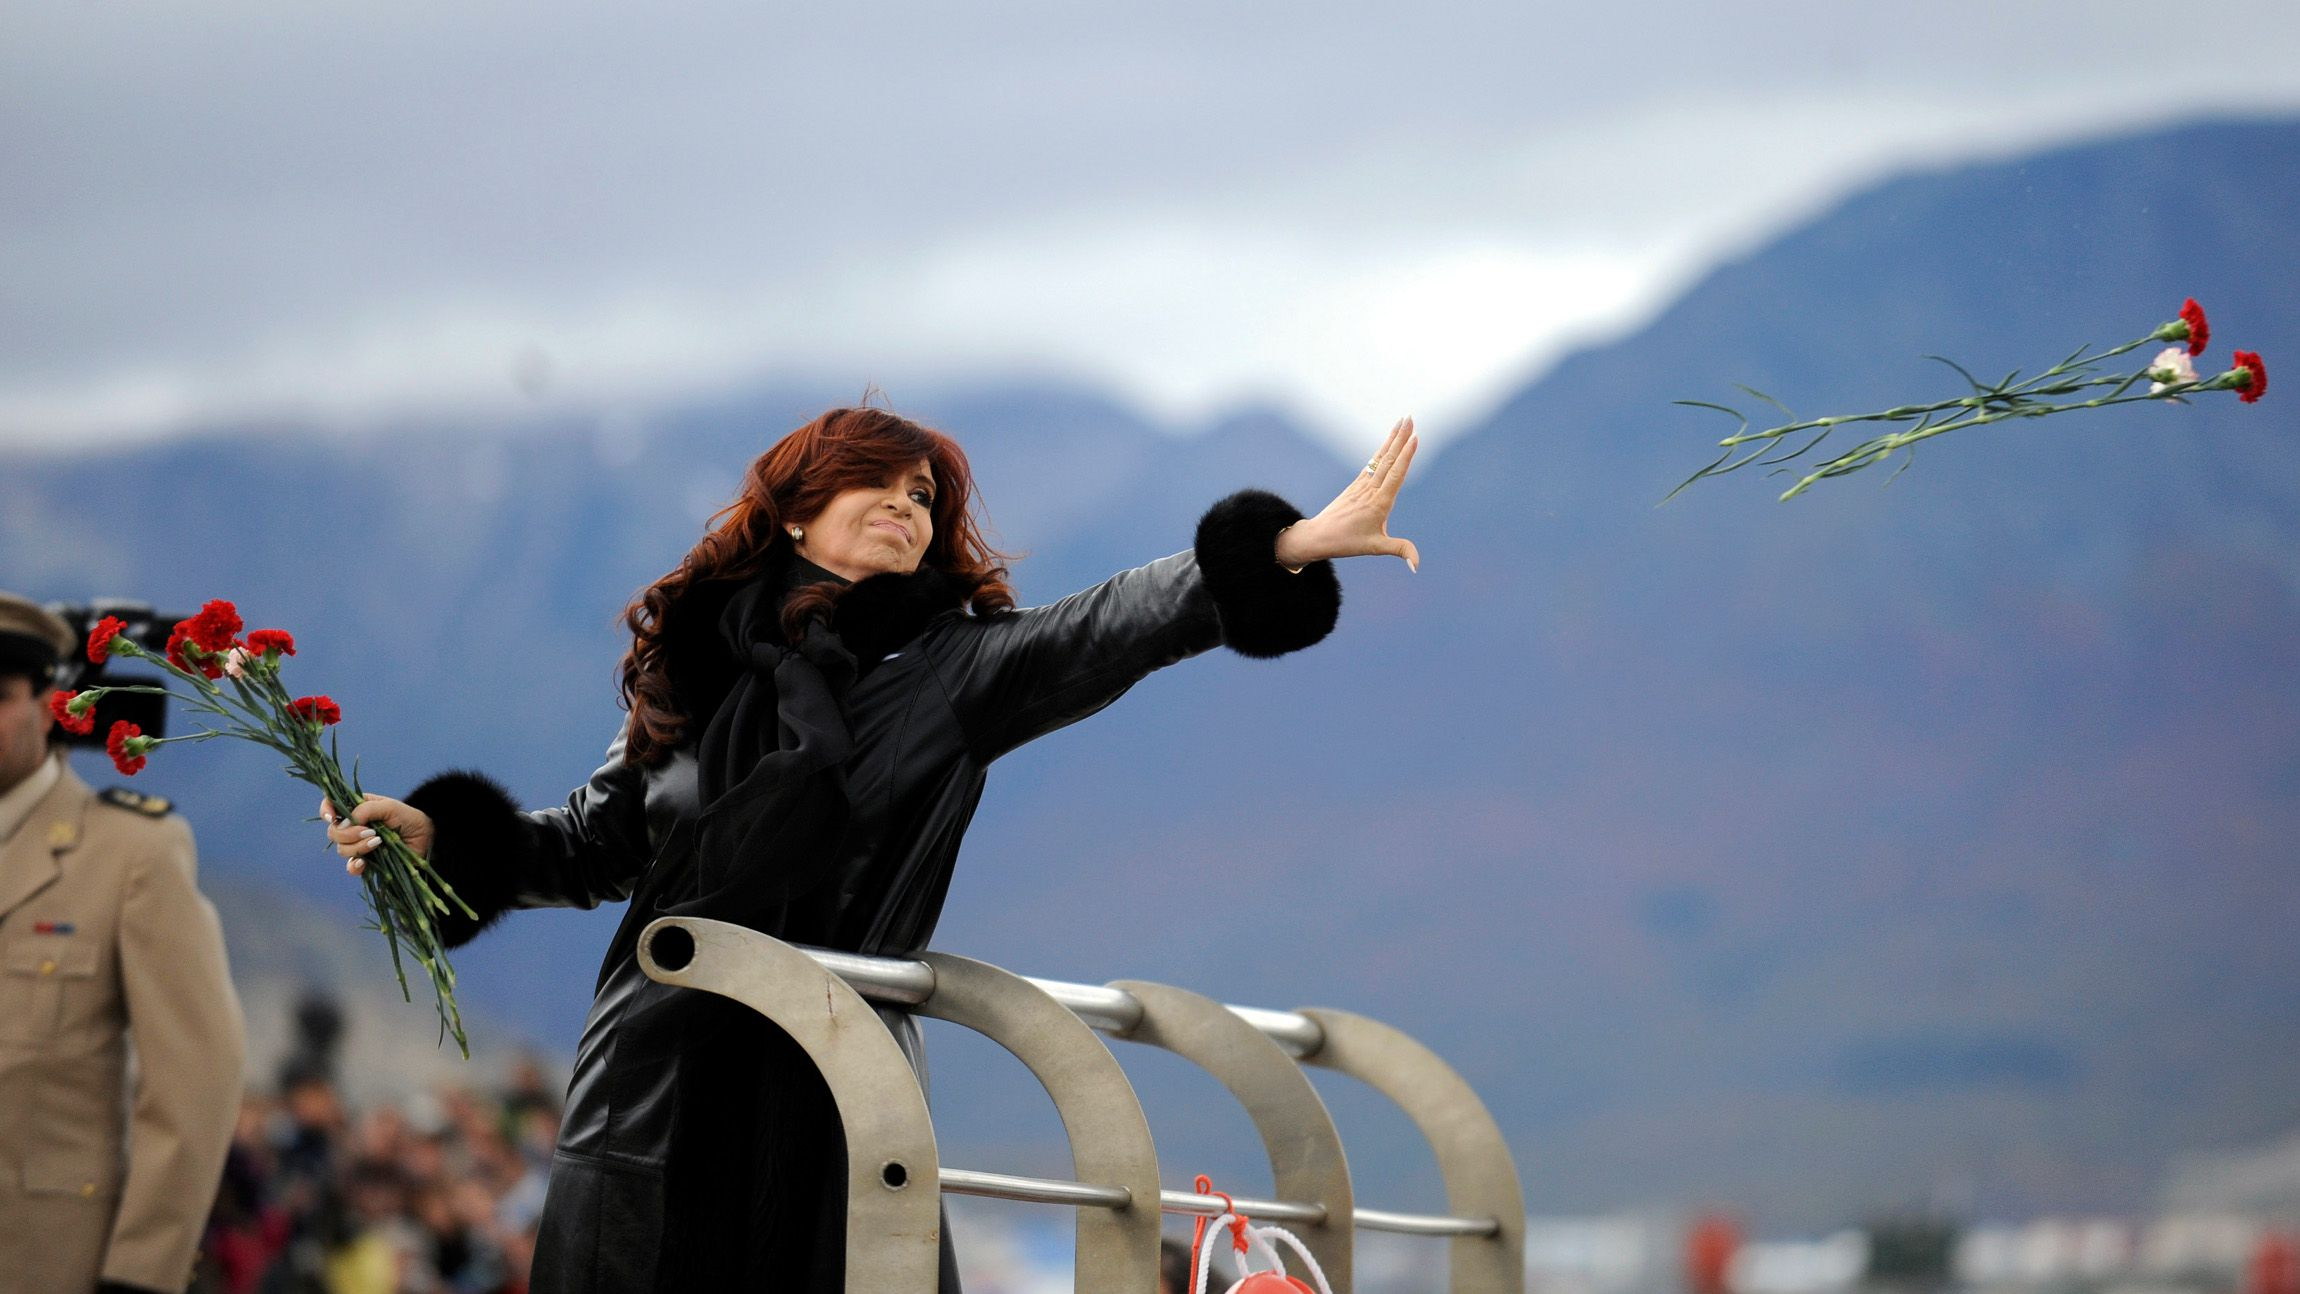 """Argentine President Cristina Fernandez de Kirchner throws flowers into the Bahia de Ushuaia (Ushuaia Bay) waters to pay homage to the fallen soldiers during the Falklands War in Ushuaia April 2, 2012. April 2 marks the 30th anniversary of the war over the Falkland islands, known commonly in Argentina as """"Las Malvinas"""". Thirty years after Britain and Argentina went to war over the Falklands, relations are at their chilliest in years as Buenos Aires launches a multi-pronged diplomatic offensive to assert its claim to sovereignty over the South Atlantic islands."""